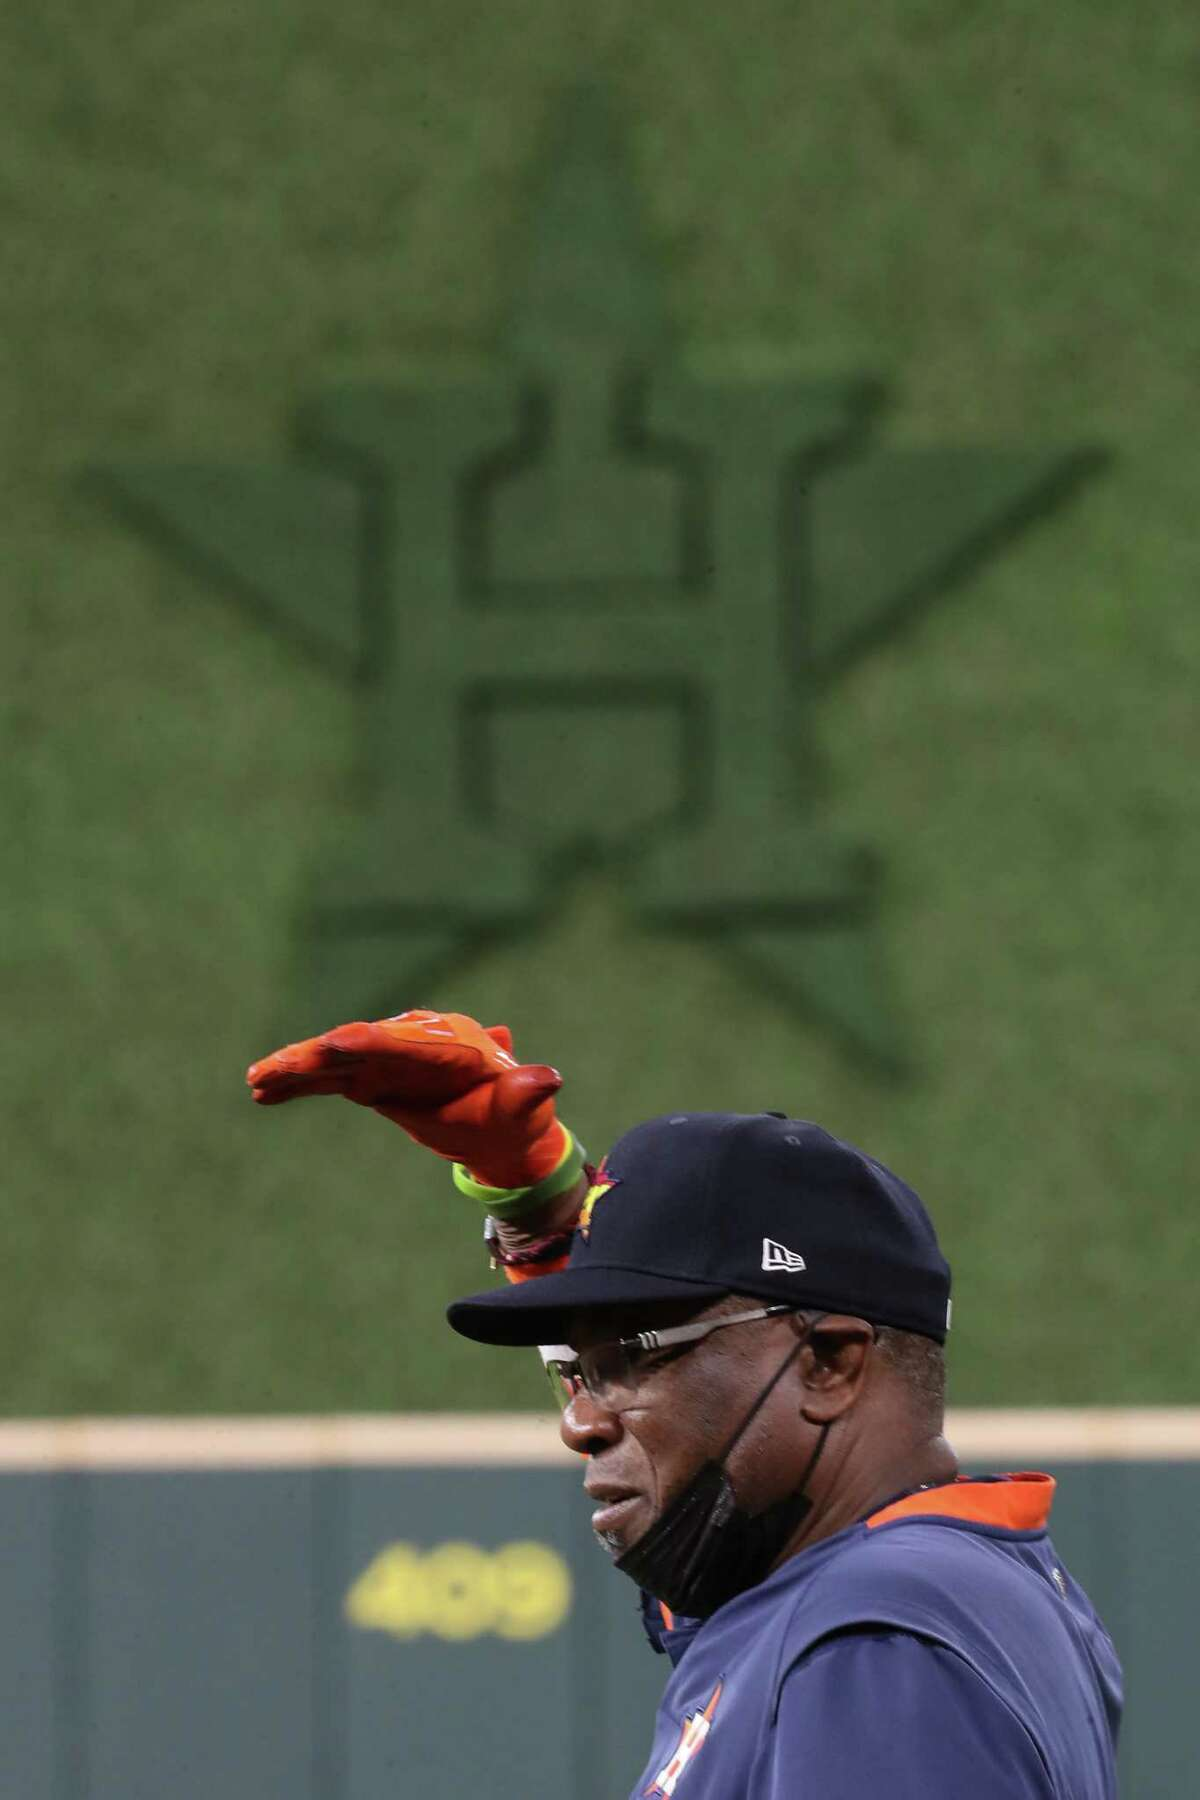 Houston Astros manager Dusty Baker Jr. talks to his players on the field during a workout the day before Game 1 of the American League Championship Series against the Boston Red Sox Thursday, Oct. 14, 2021 in Houston.